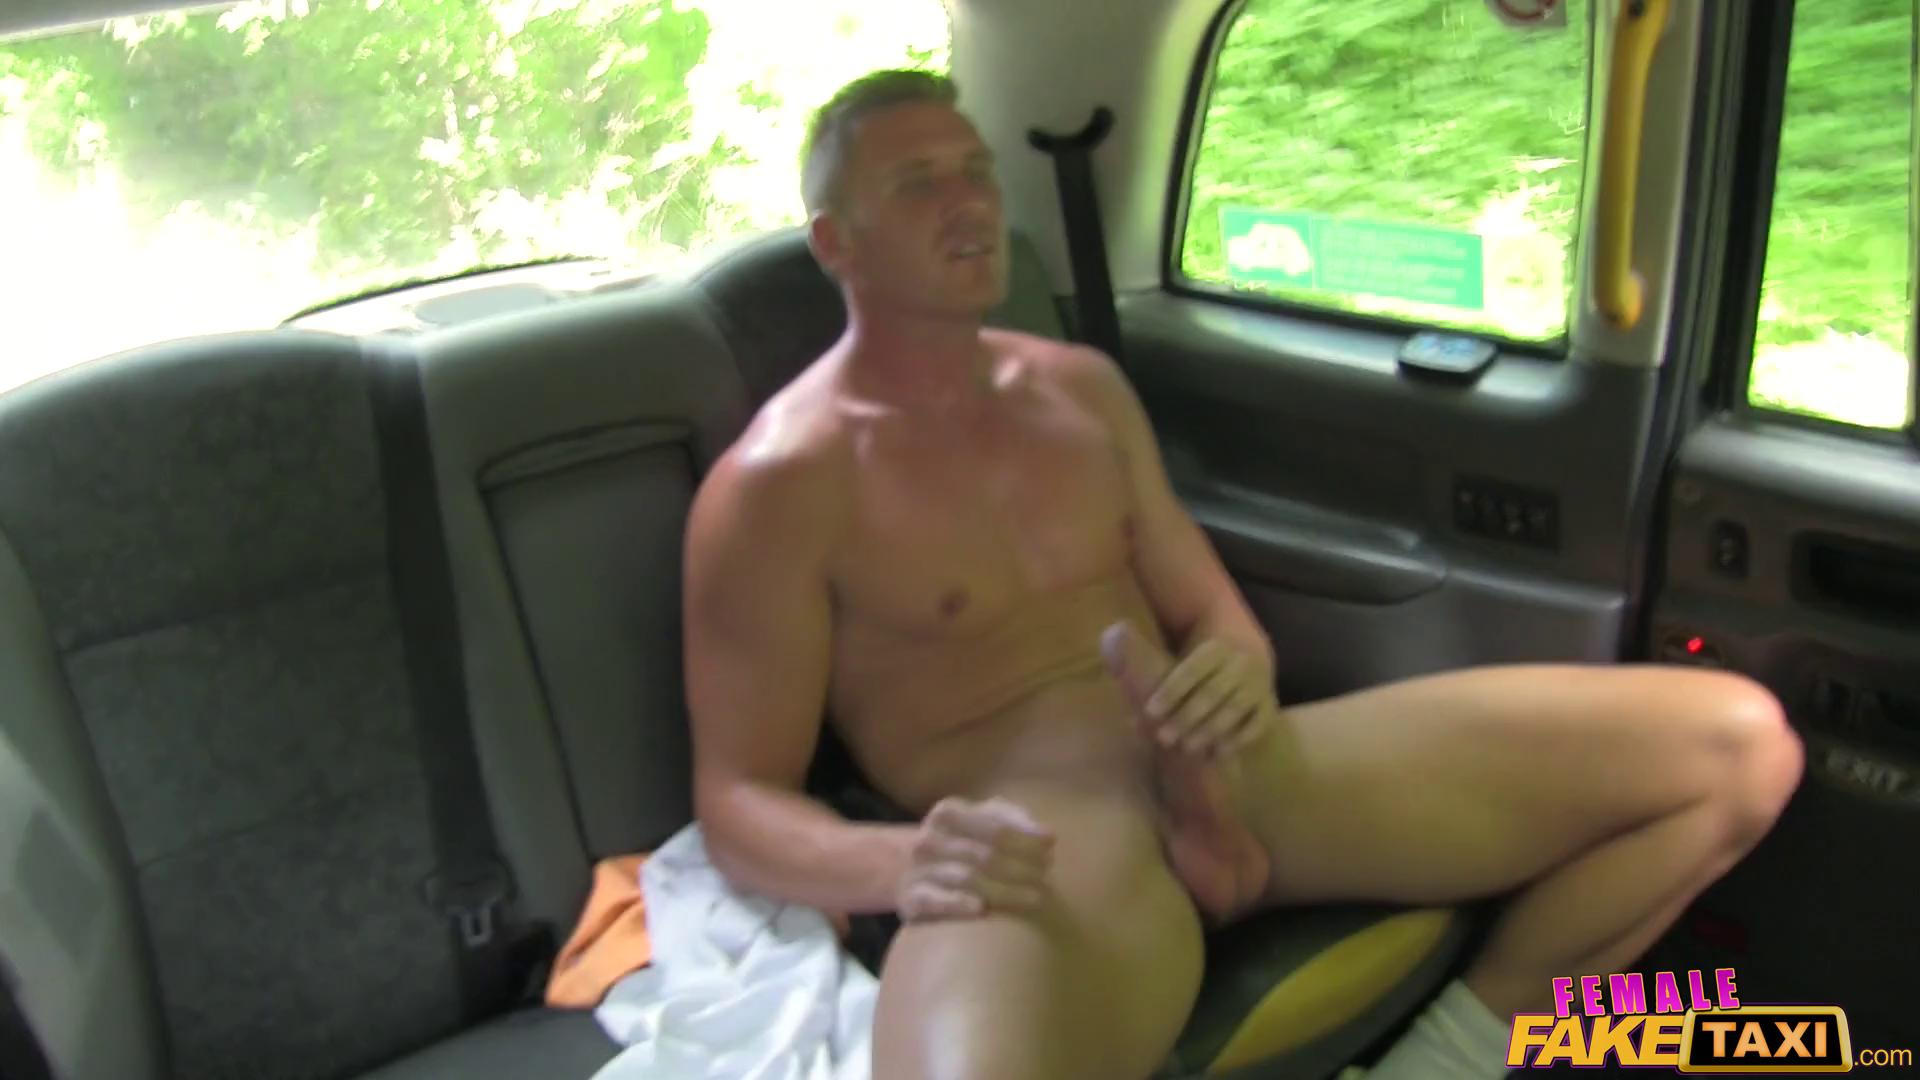 FemaleFakeTaxi – Ava Austen Hot Cabbie Fucked On Taxi Bonnet